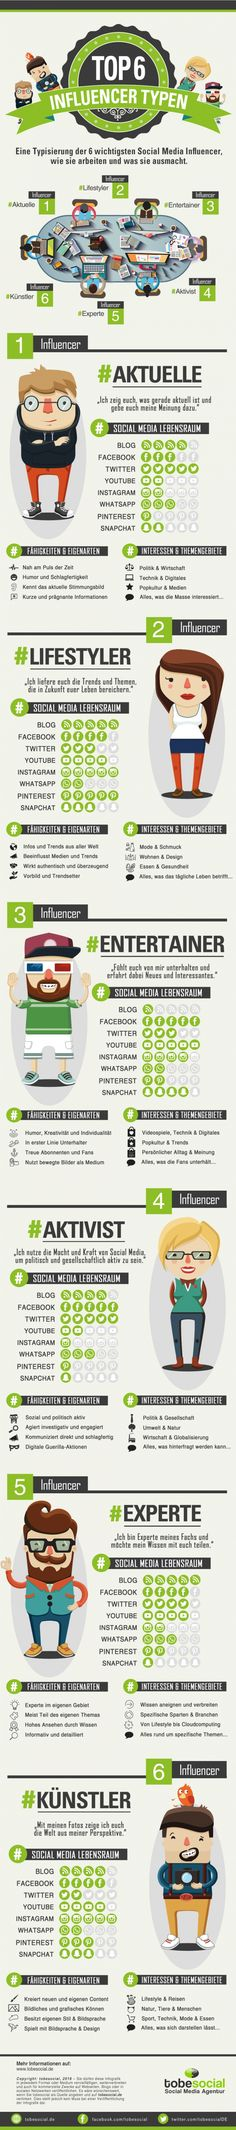 Top Social Media Influencer Typen Infografik: Agentur für Influencer Marketing und Empfehlungsmarketing via Social Media, auf Facebook, YouTube, Instagram, SnapChat, WhatsApp, Blogger Marketing, Blogger Relations. Social Media B2B und B2C, Agentur Word of Mouth Marketing http://tobesocial.de/blog/infografik-influencer-marketing-social-media-agentur-youtube-facebook-instagram-empfehlungsmarketing